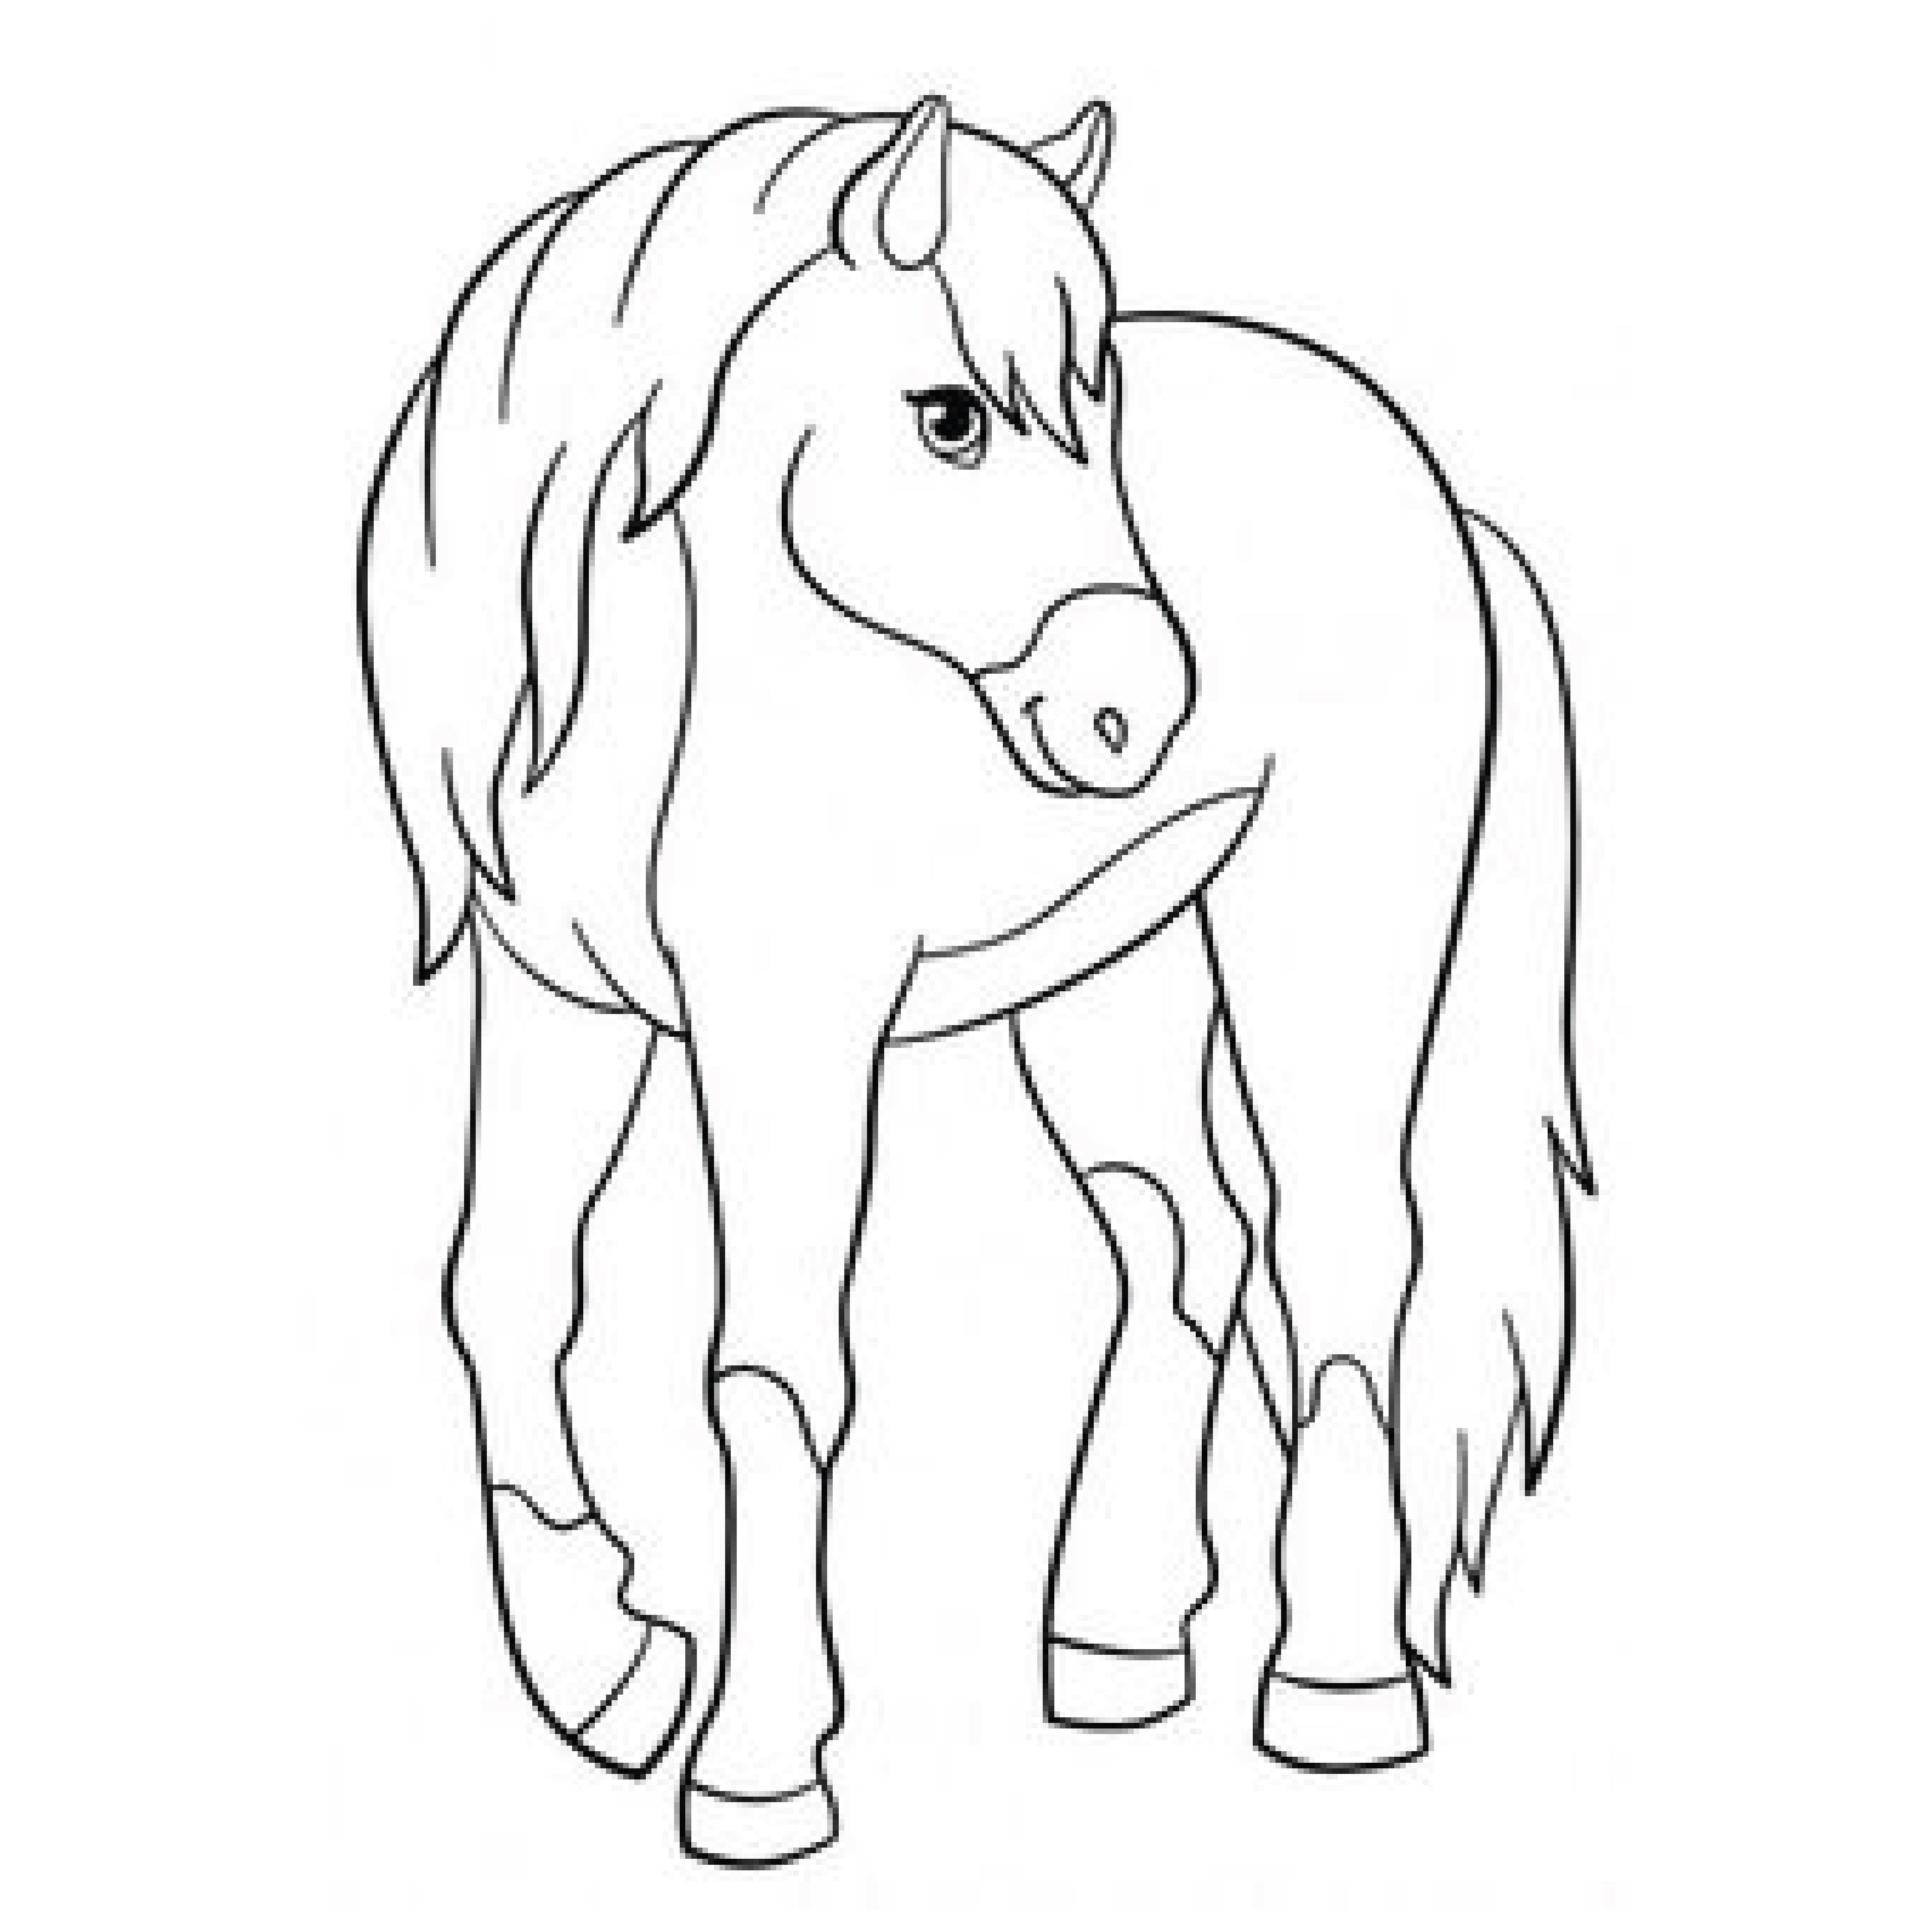 Kishor Artist I Will Make Uniquecoloring Book Page For Children For 5 On Fiverr Com In 2021 Horse Coloring Pages Horse Coloring Animal Coloring Pages [ 4167 x 4167 Pixel ]